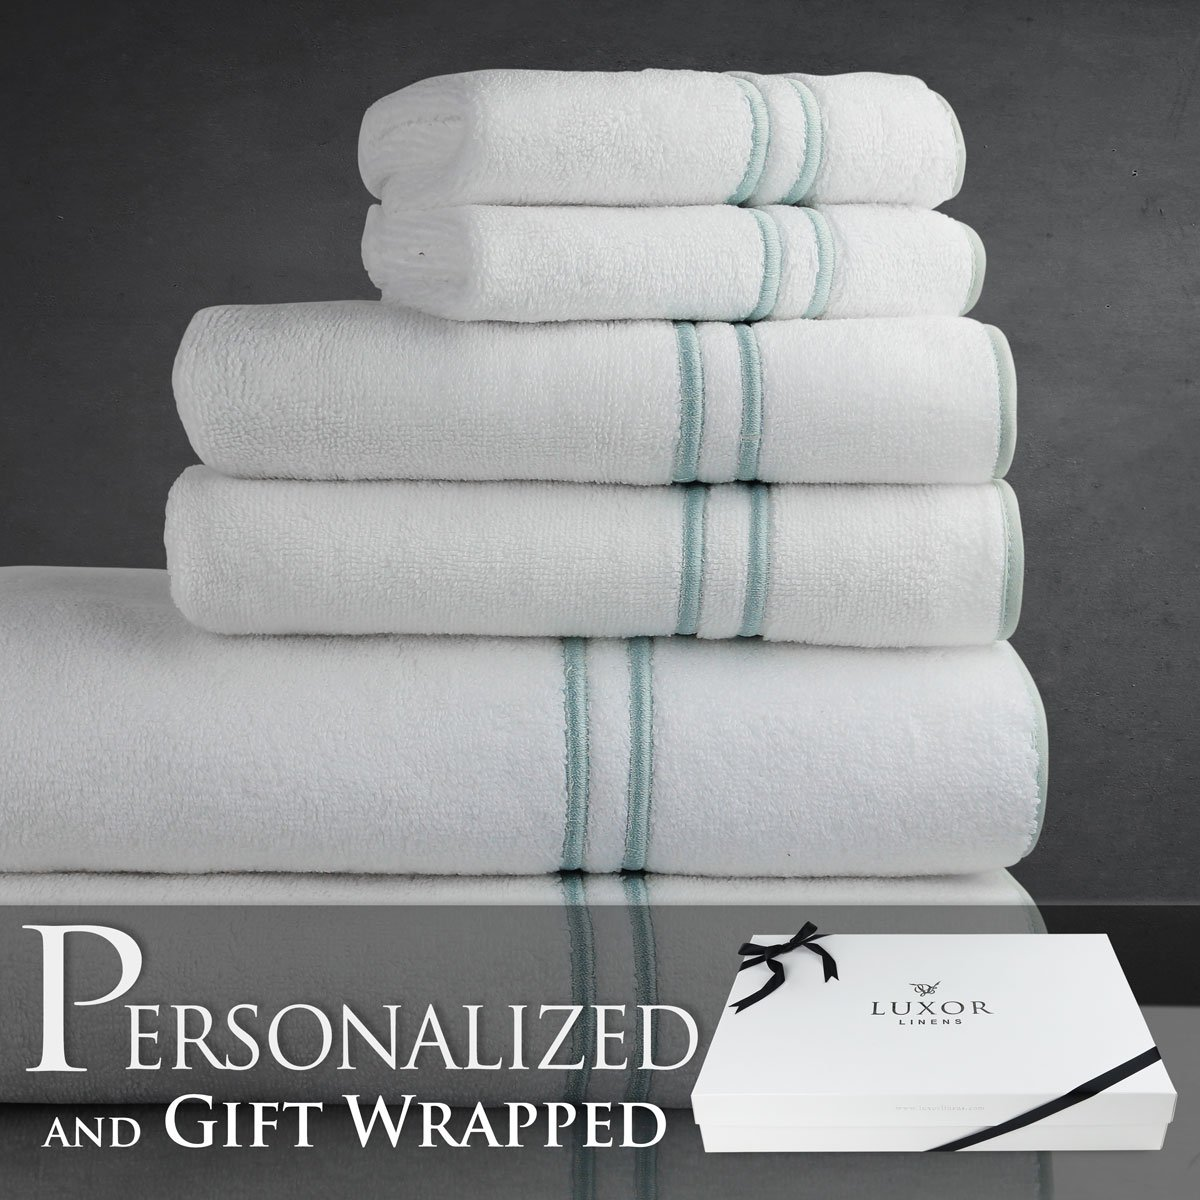 Luxor Linens Turkish Towels Varese Collection Egyptian Cotton 6-Piece Towel Set - Seafoam - Mr. & Mrs. - Signature Gift Packaging Included! The Perfect Wedding Gift! by Luxor Linens